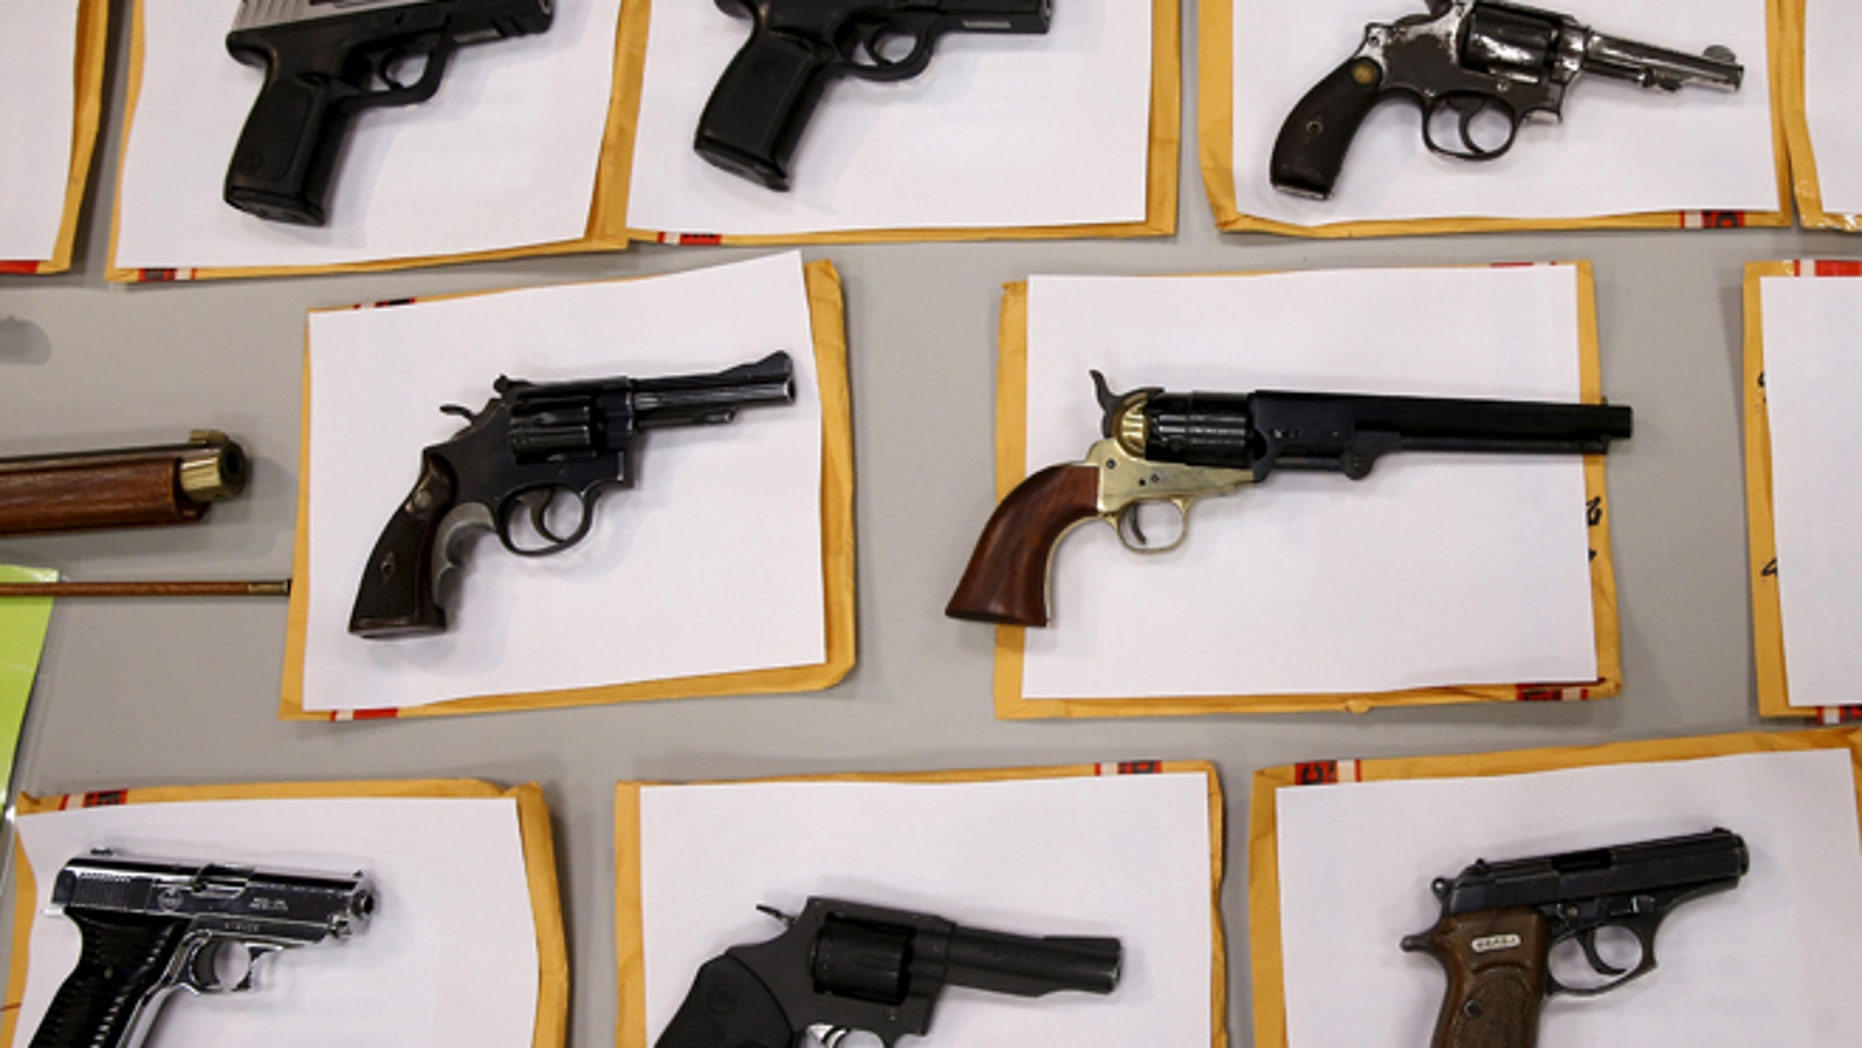 Some of the guns seized over the last week are seen on display at the Chicago Police Department in Chicago, Illinois, United States, August 31, 2015.  REUTERS/Jim Young   - RTX1QHK9